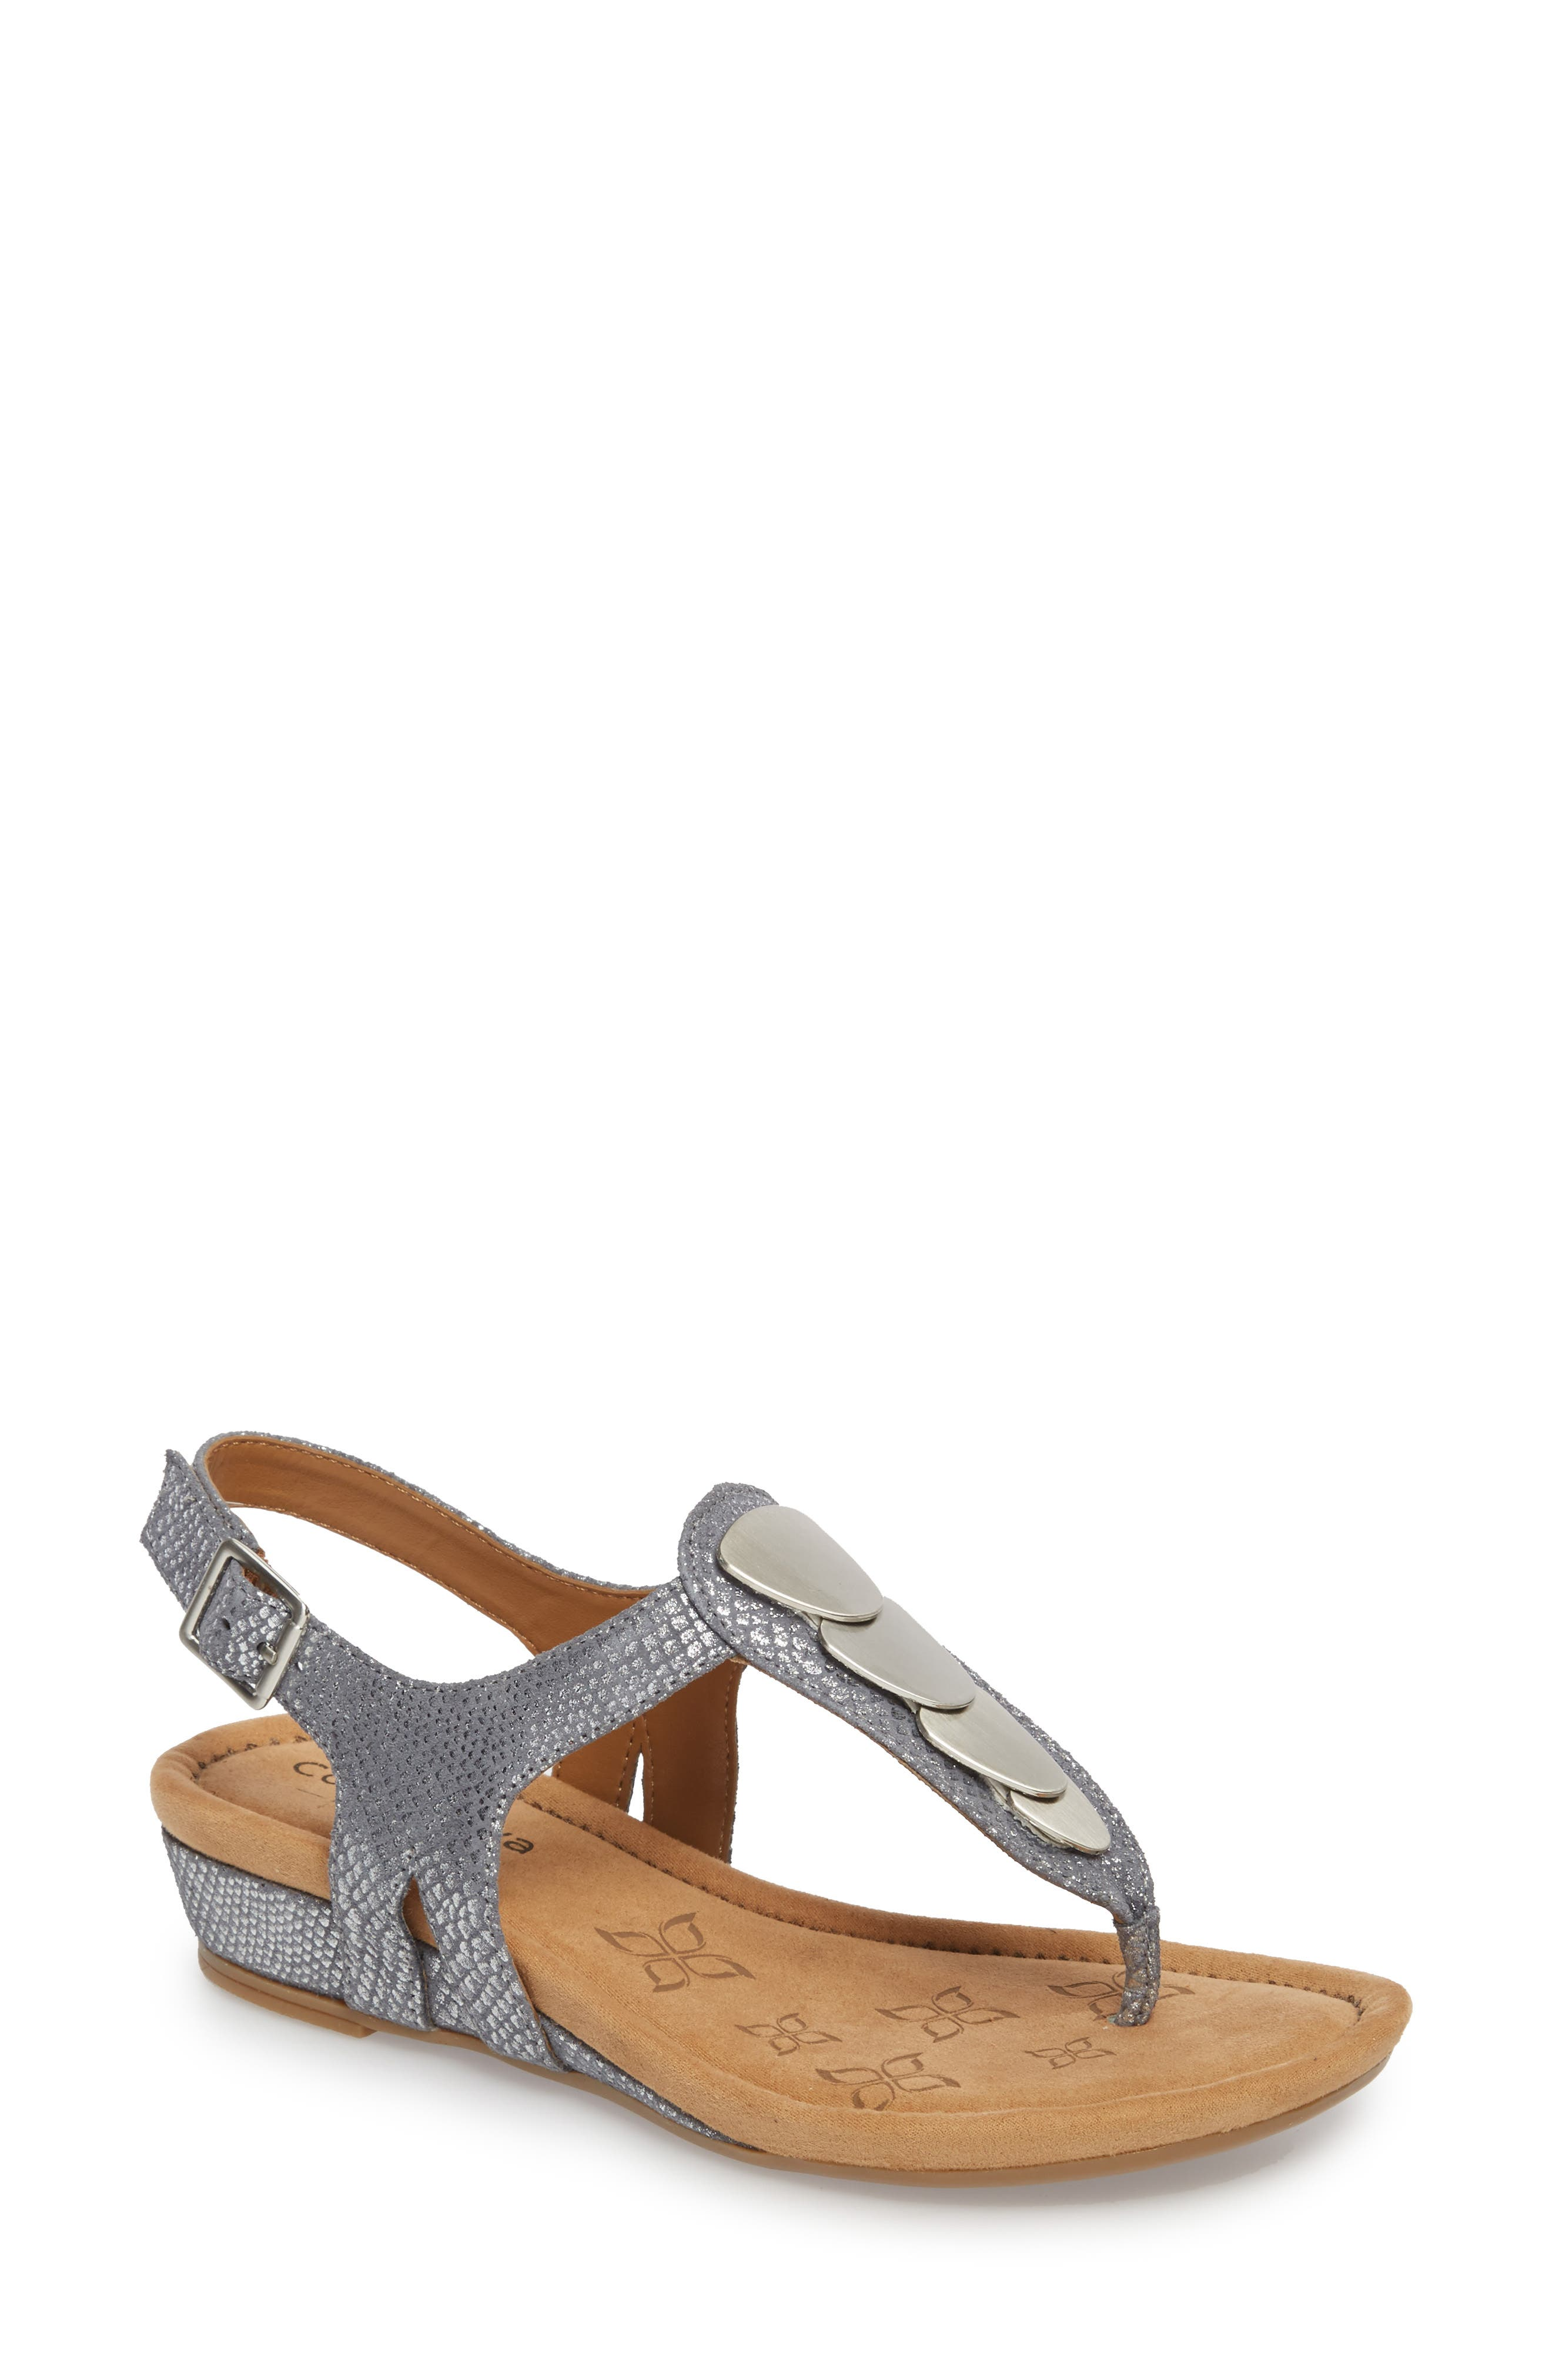 Summit Wedge Sandal,                             Main thumbnail 1, color,                             PEWTER SUEDE